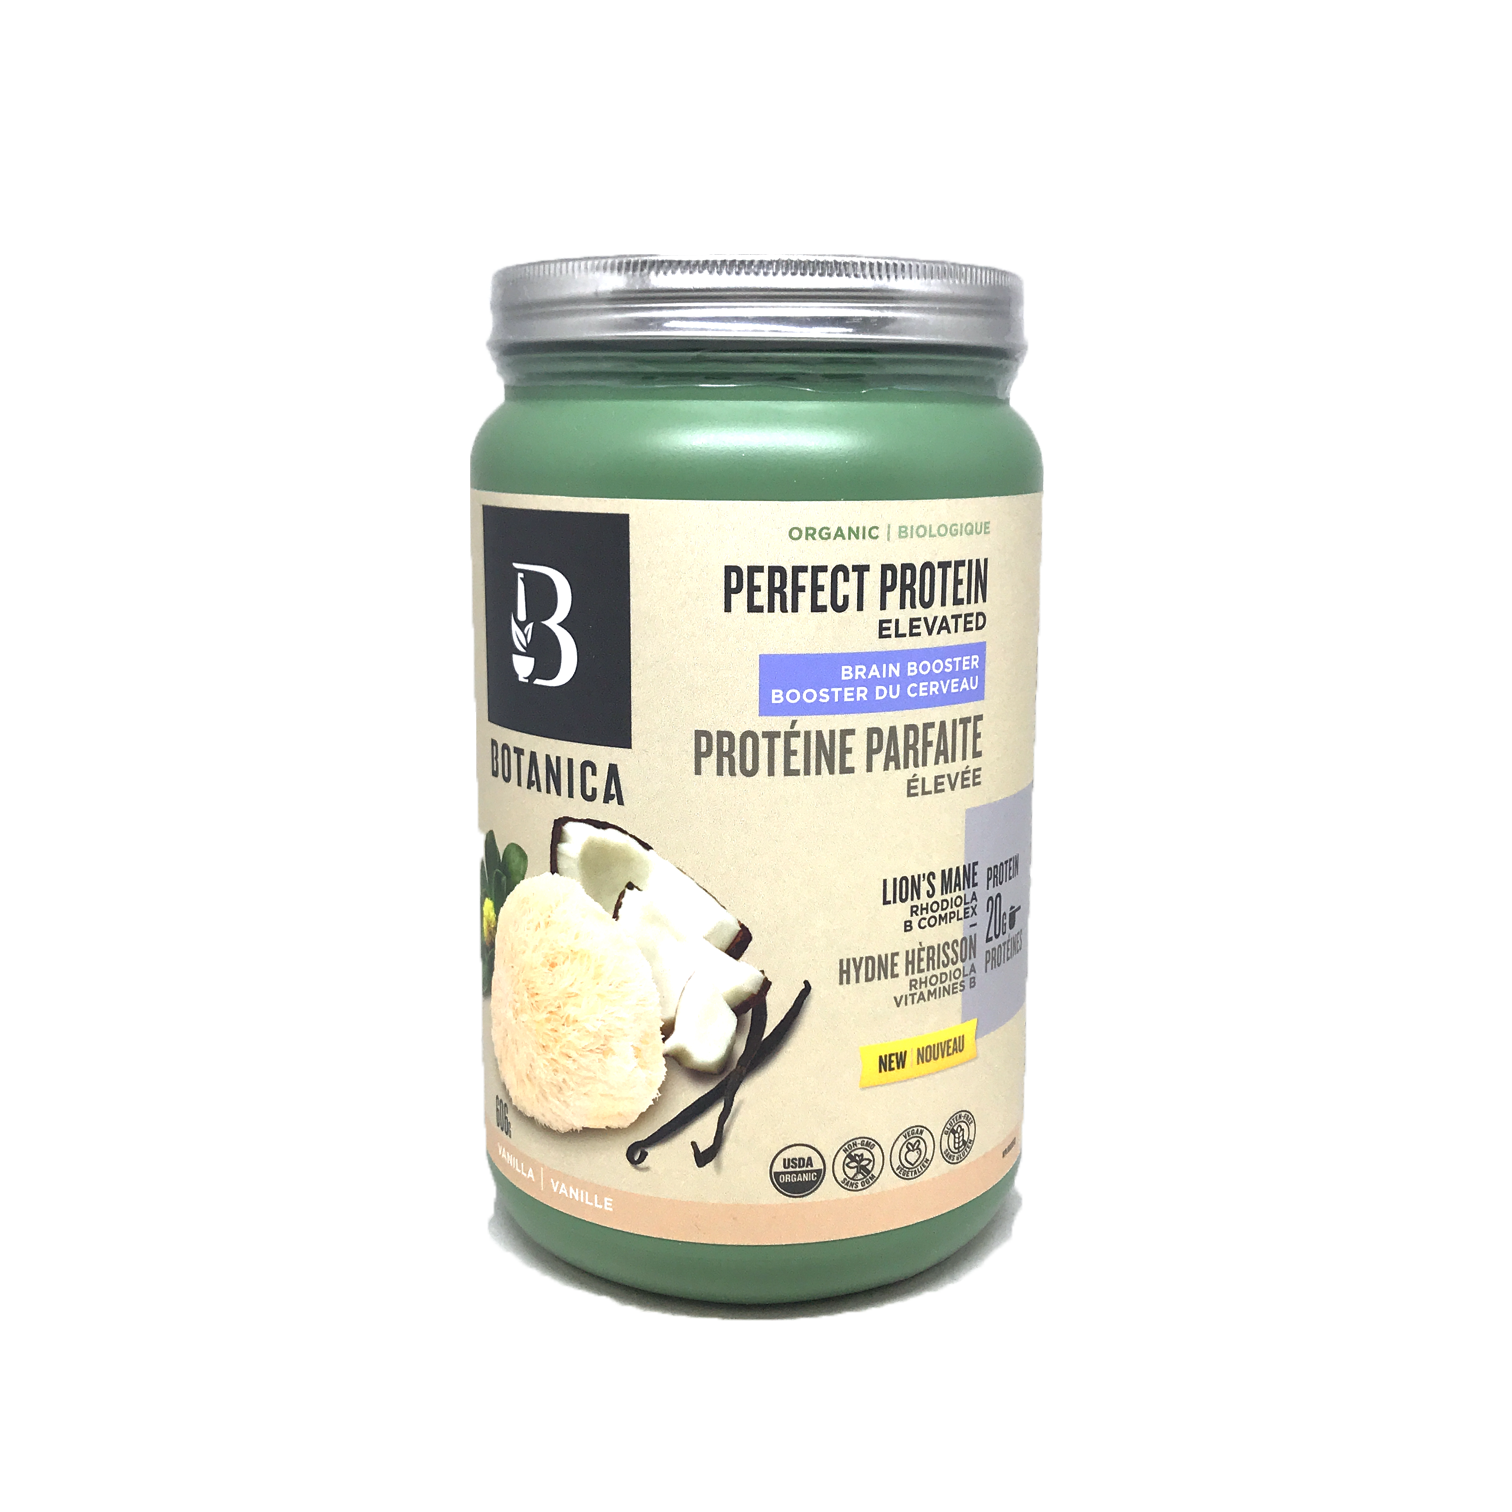 Botanica Organic Perfect Protein Elevated Brain Booster Vanilla 606g